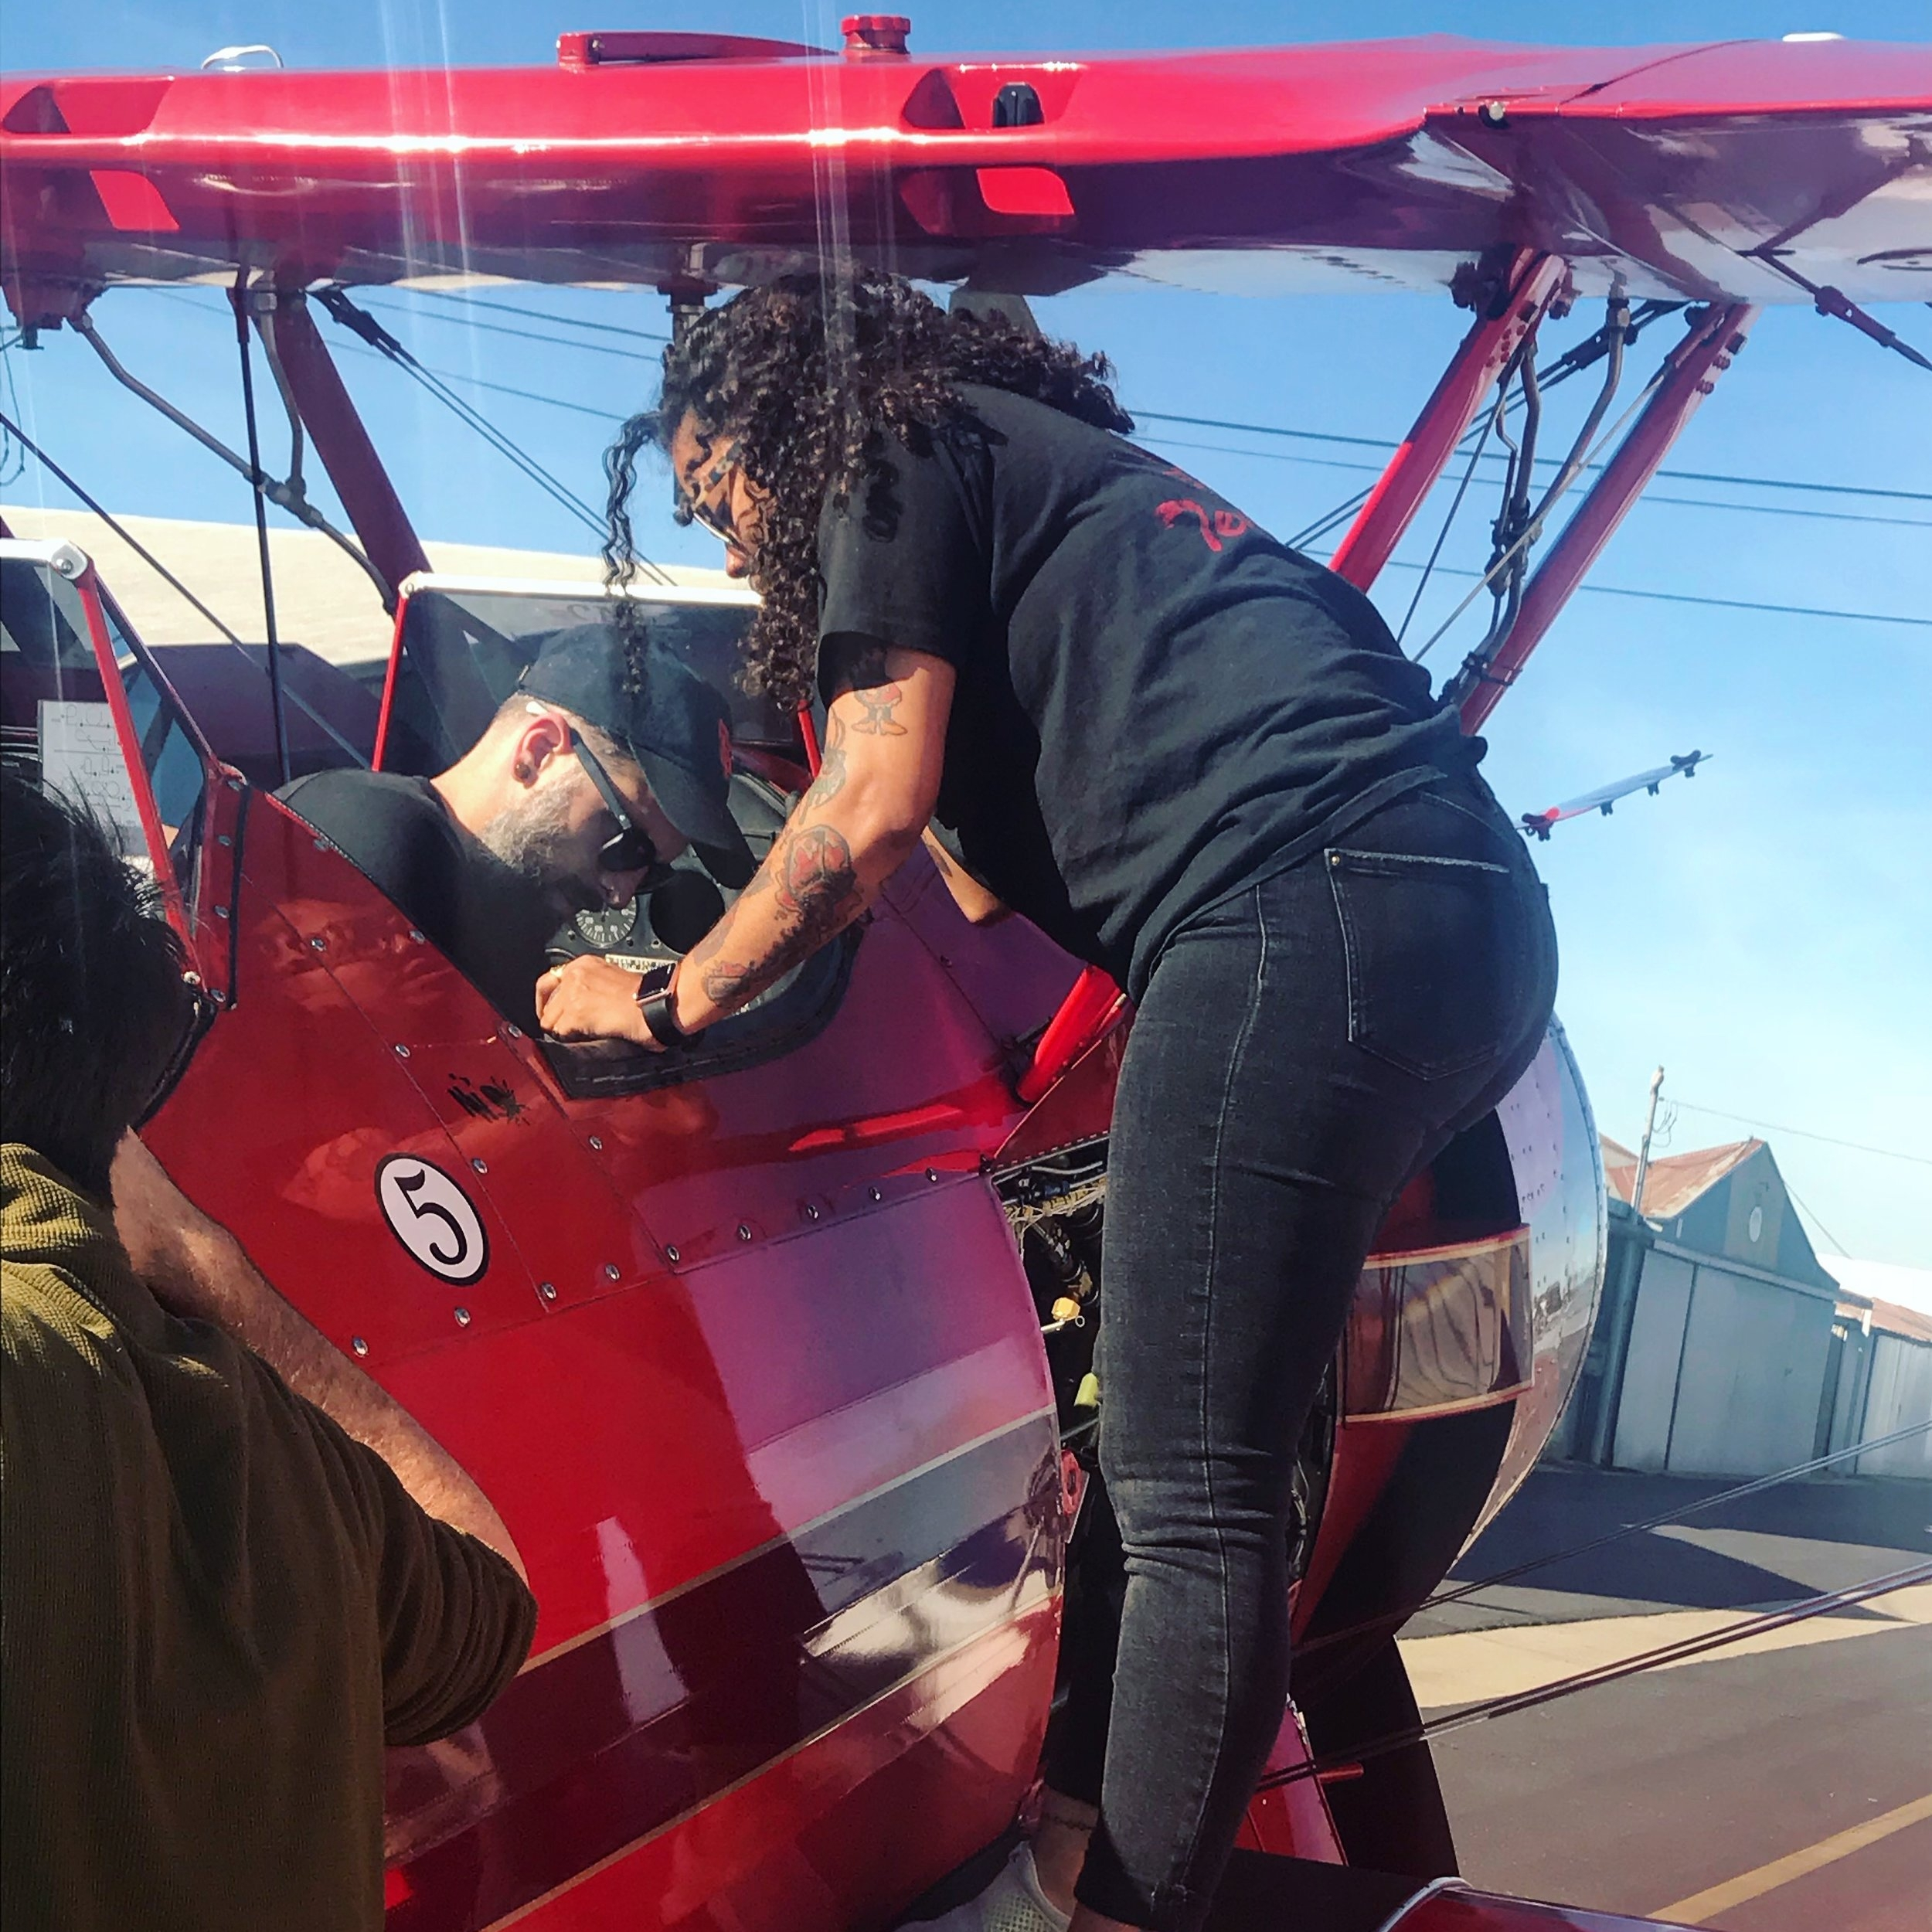 Rigging mics on a biplane before takeoff